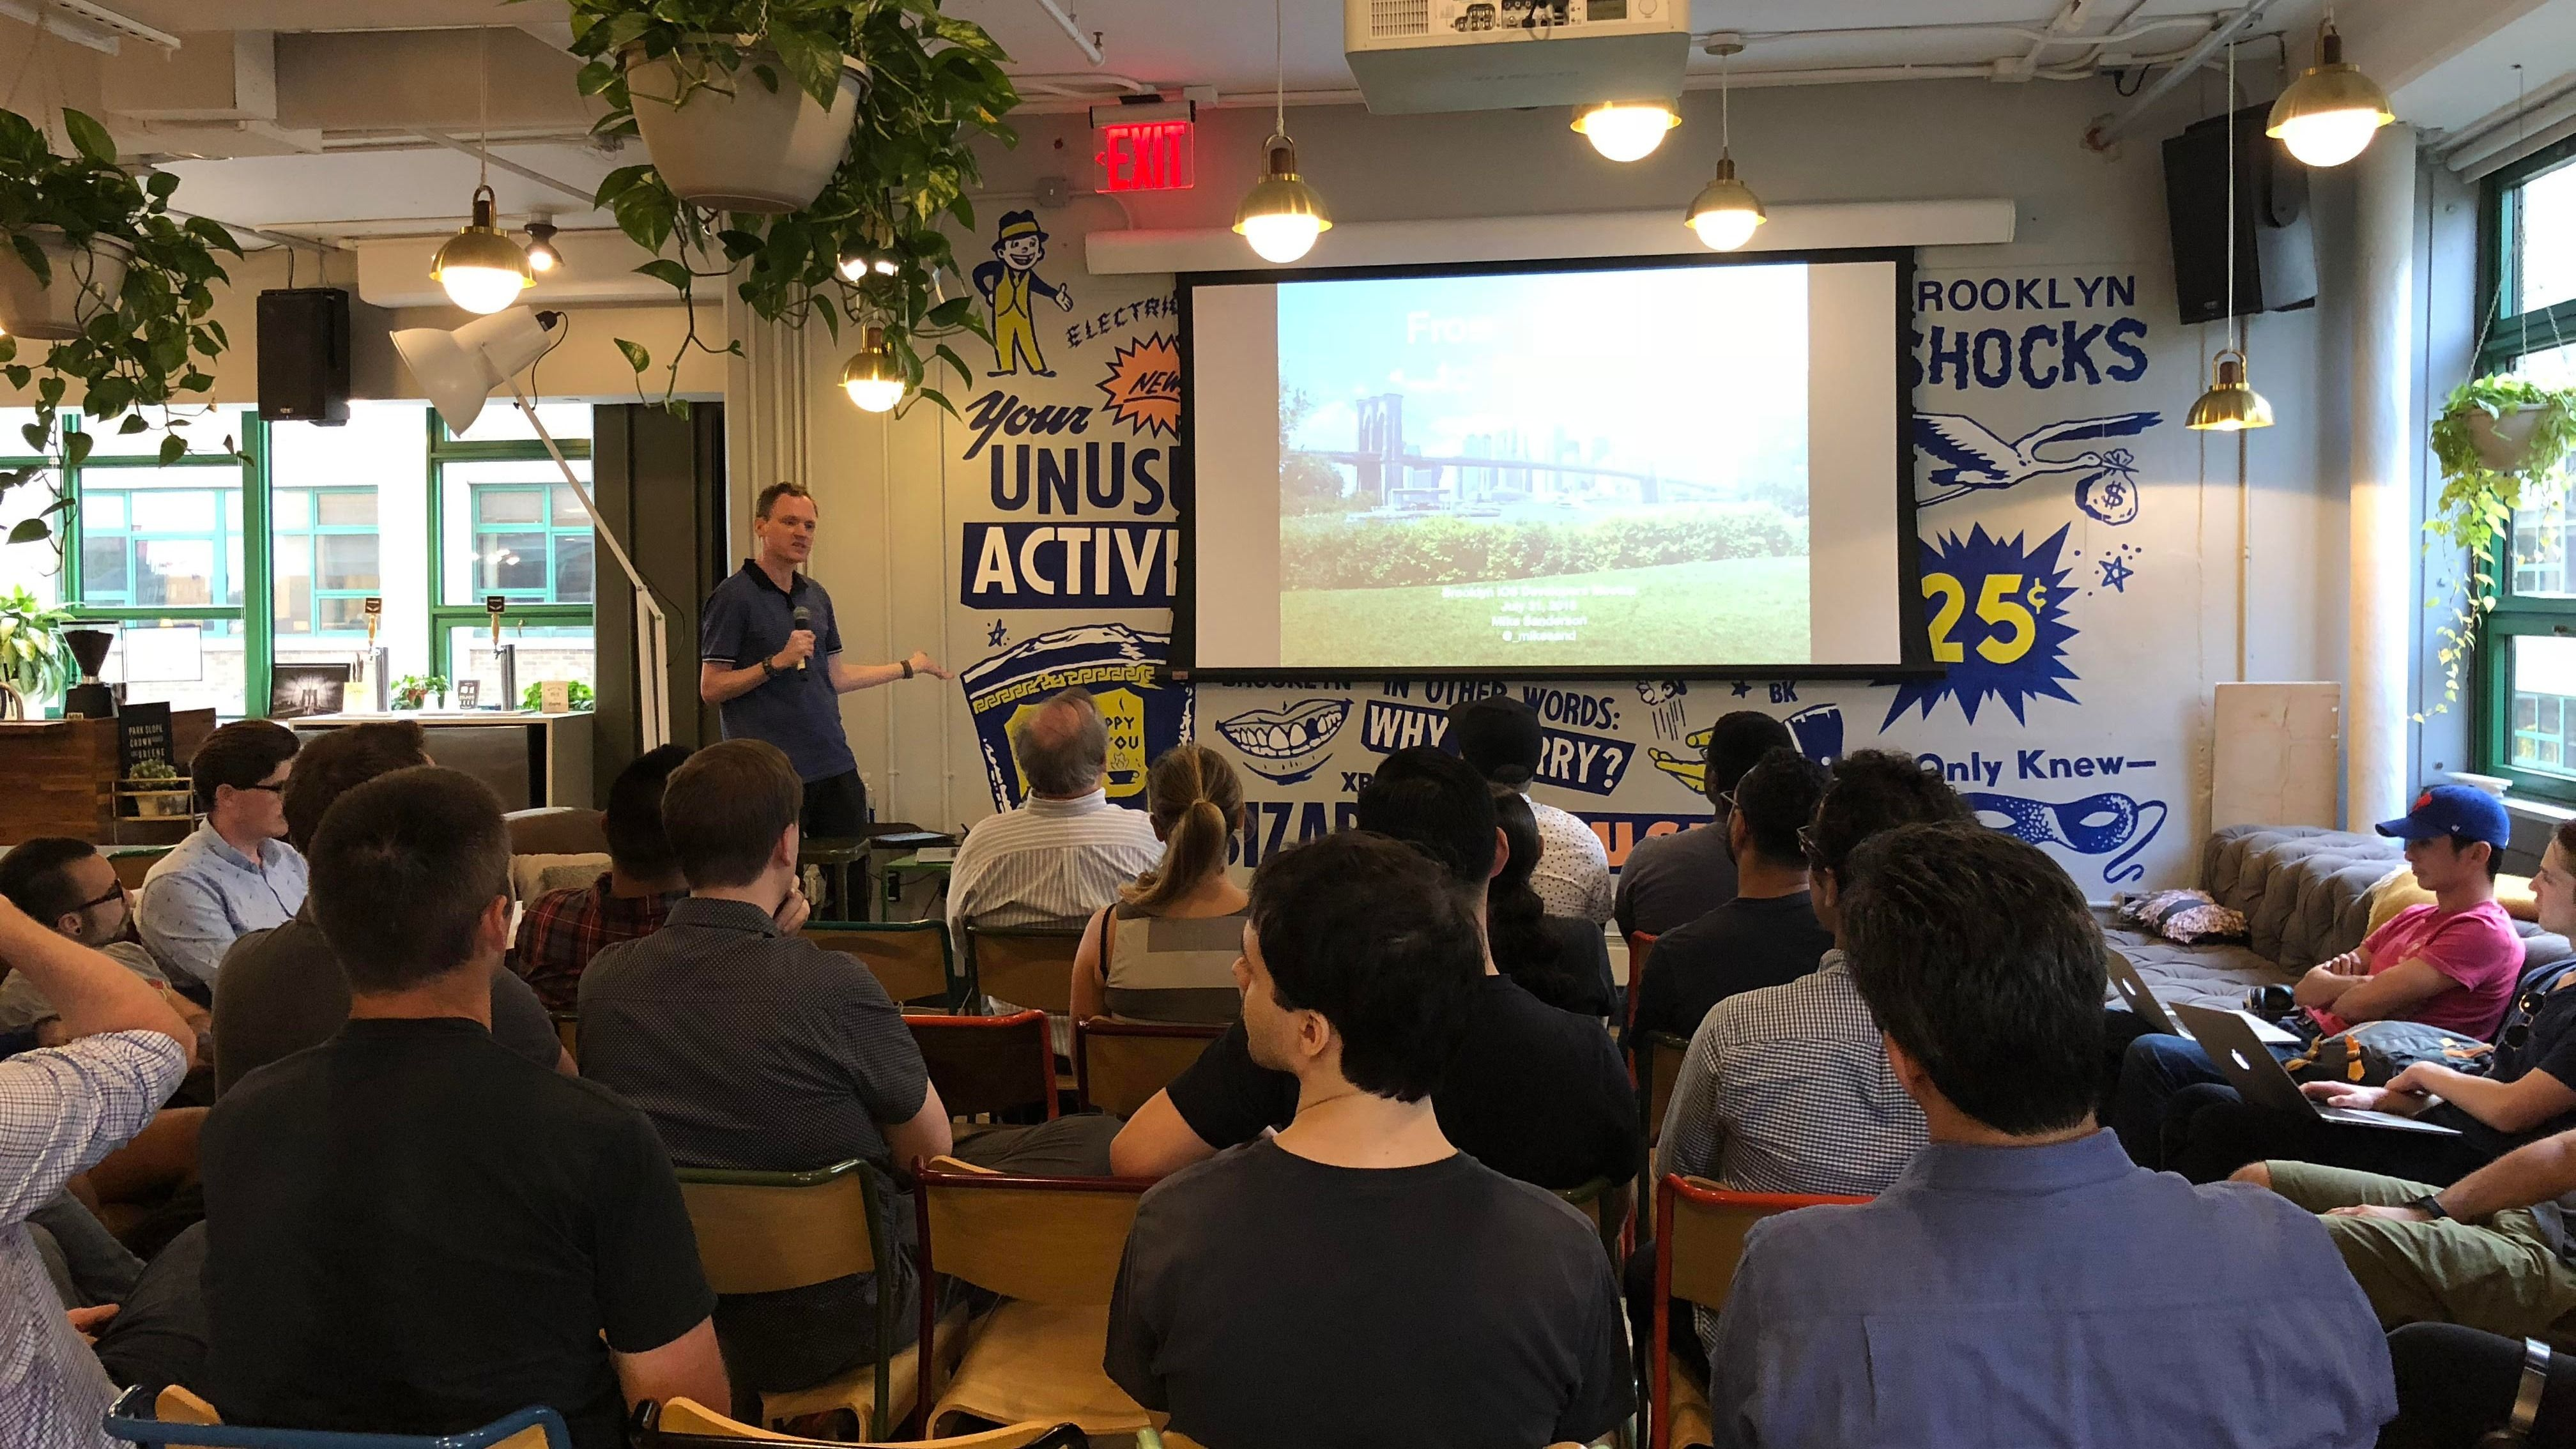 The Brooklyn iOS Developer Meetup